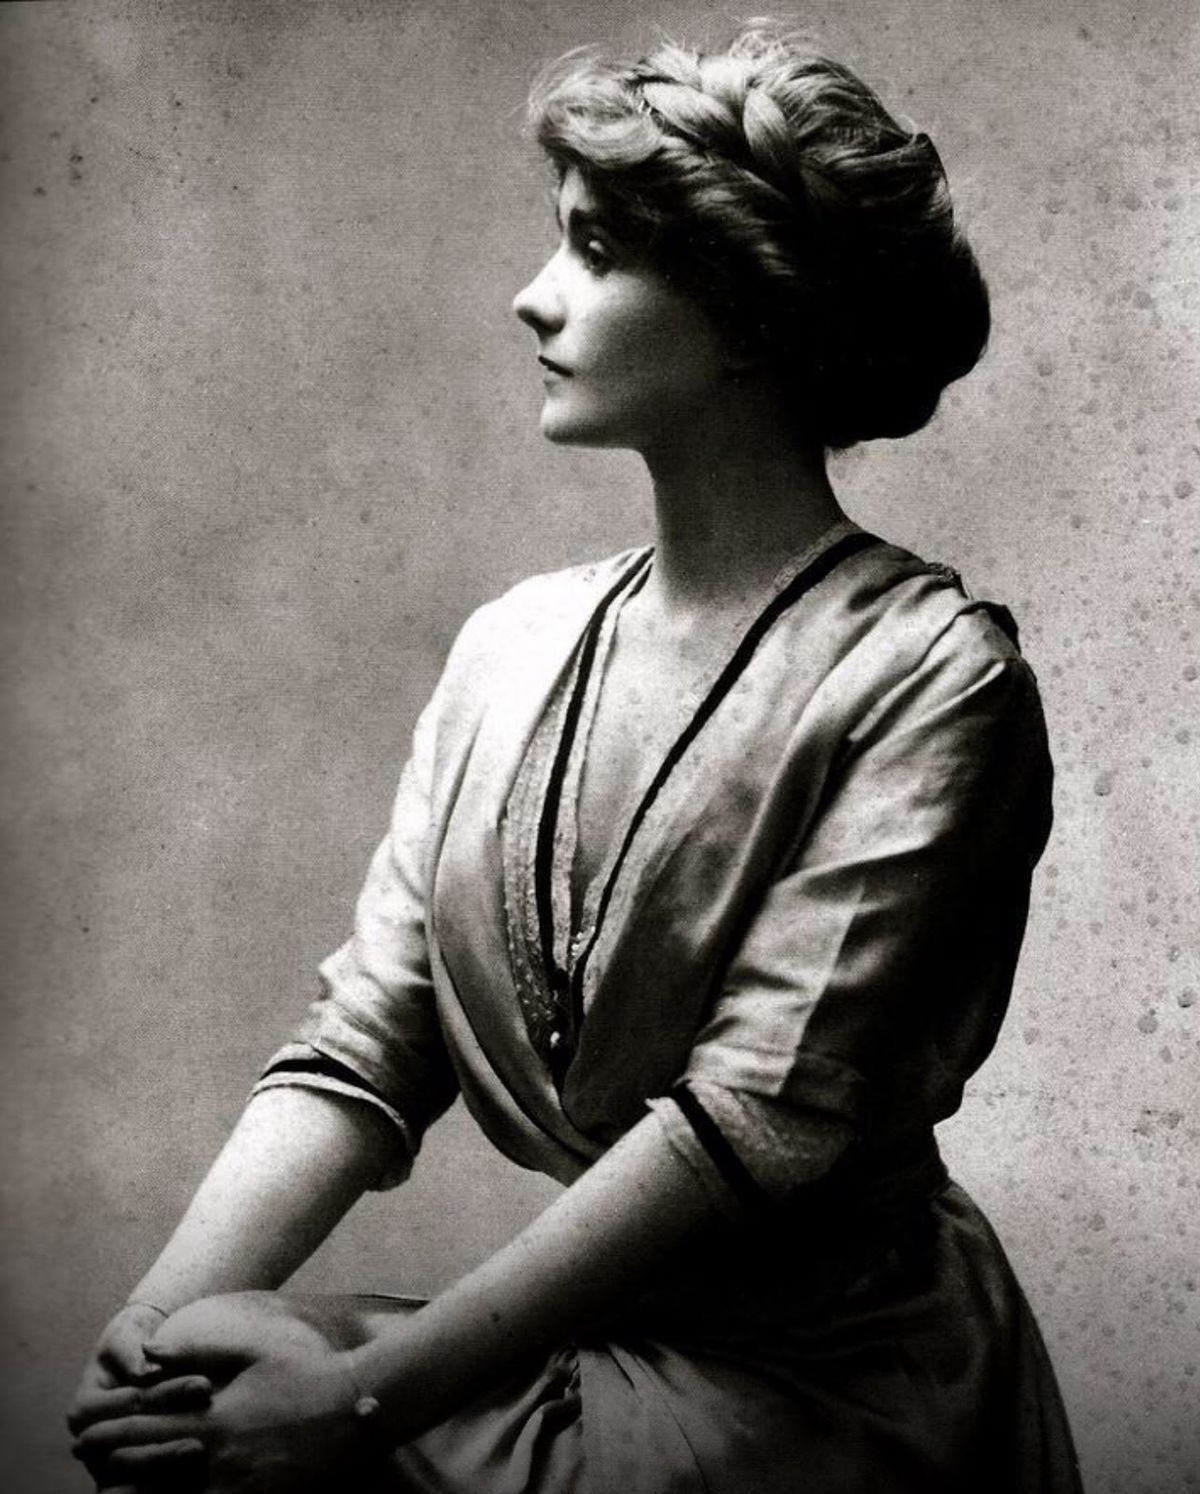 portrait of a young gabrielle coco chanel in 1910 besuche unseren shop wenn es nicht. Black Bedroom Furniture Sets. Home Design Ideas